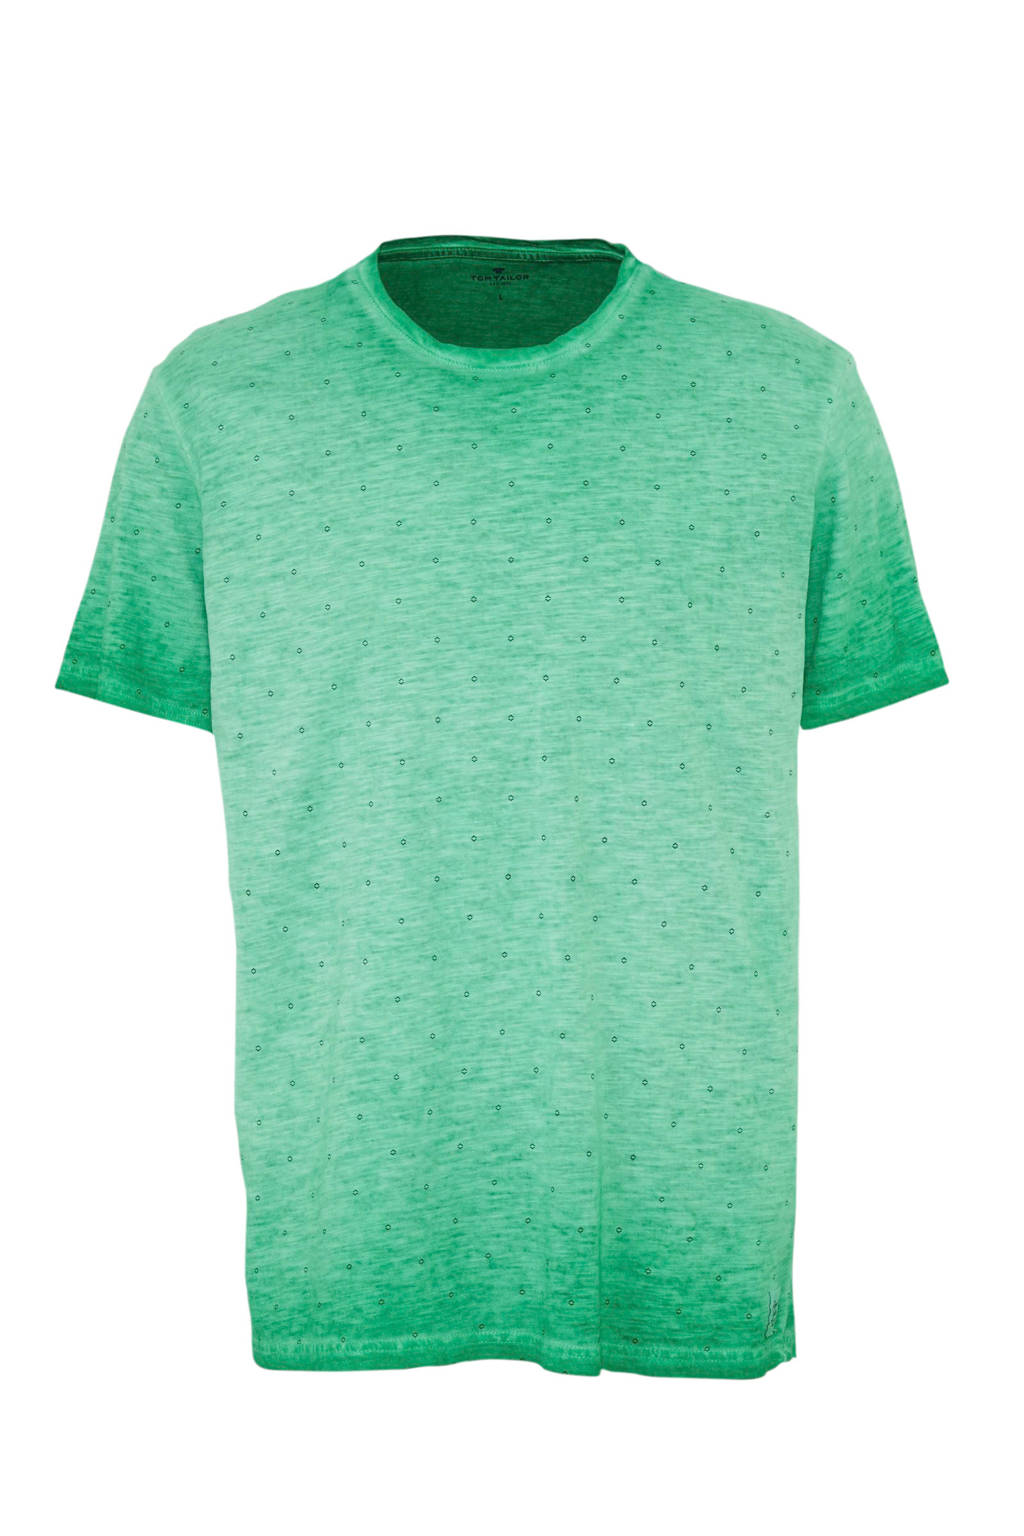 Tom Tailor T-shirt met all over print, Groen